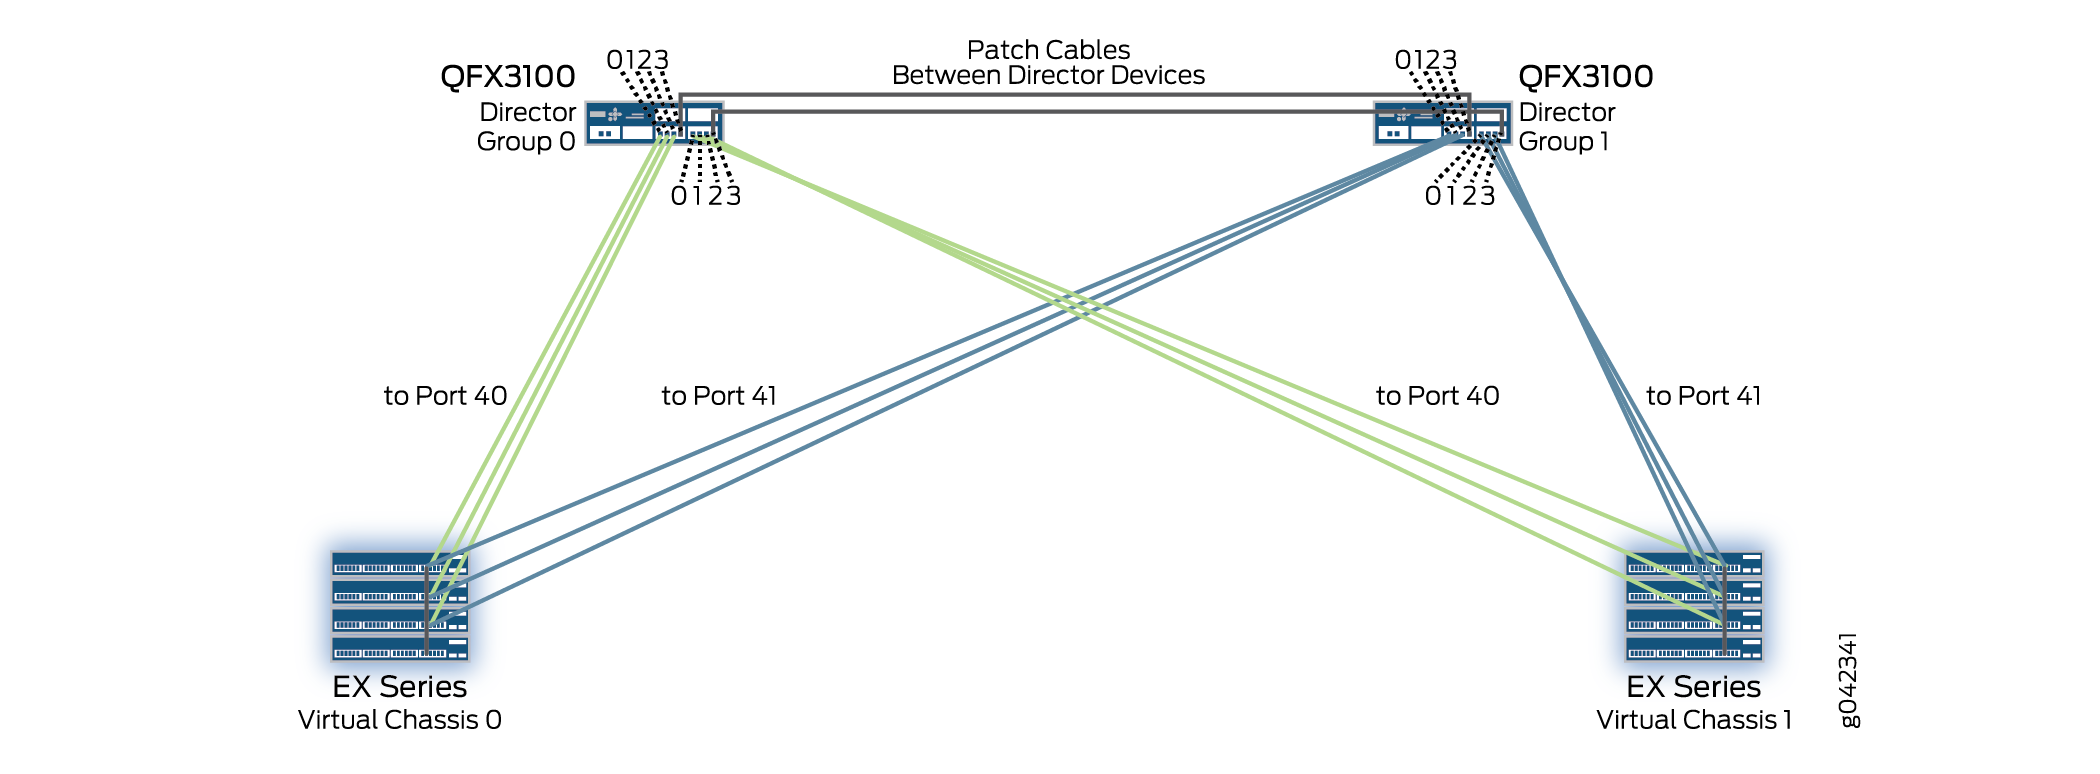 connecting qfx3100 director devices in a director group rh juniper net